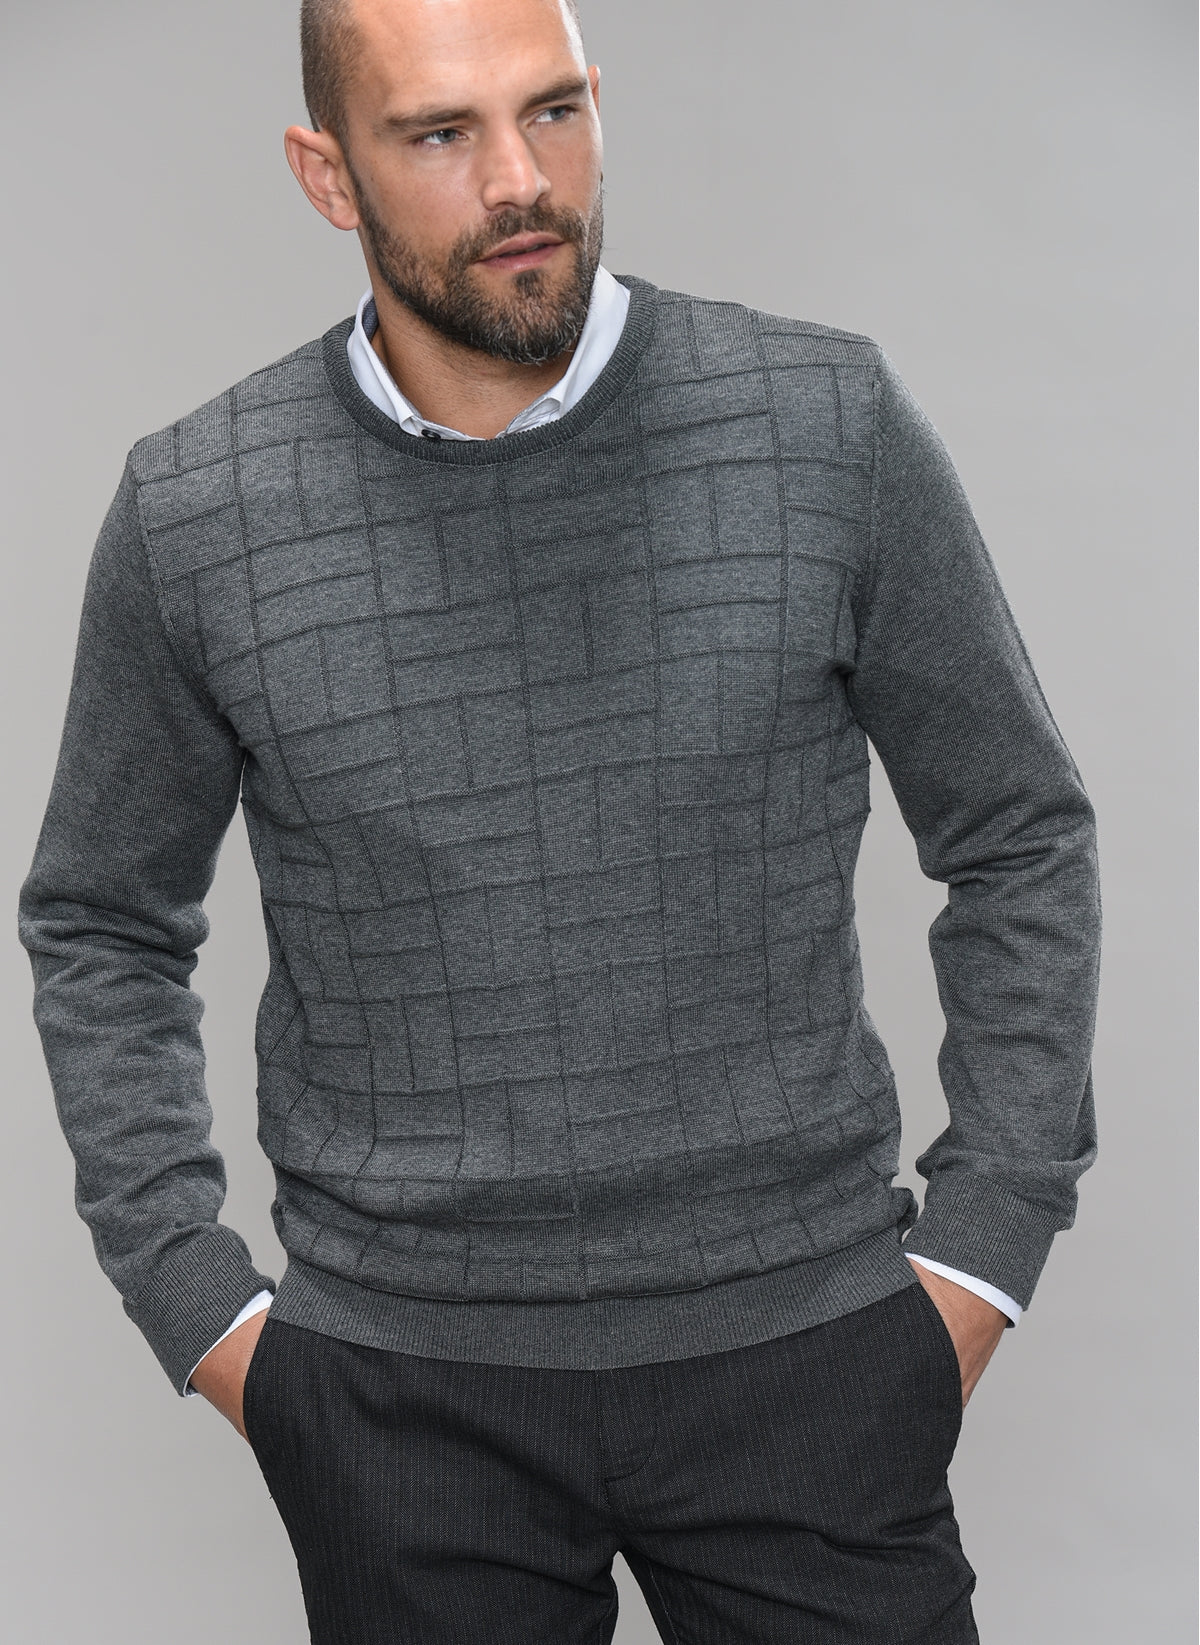 Patterned-Front Sweater